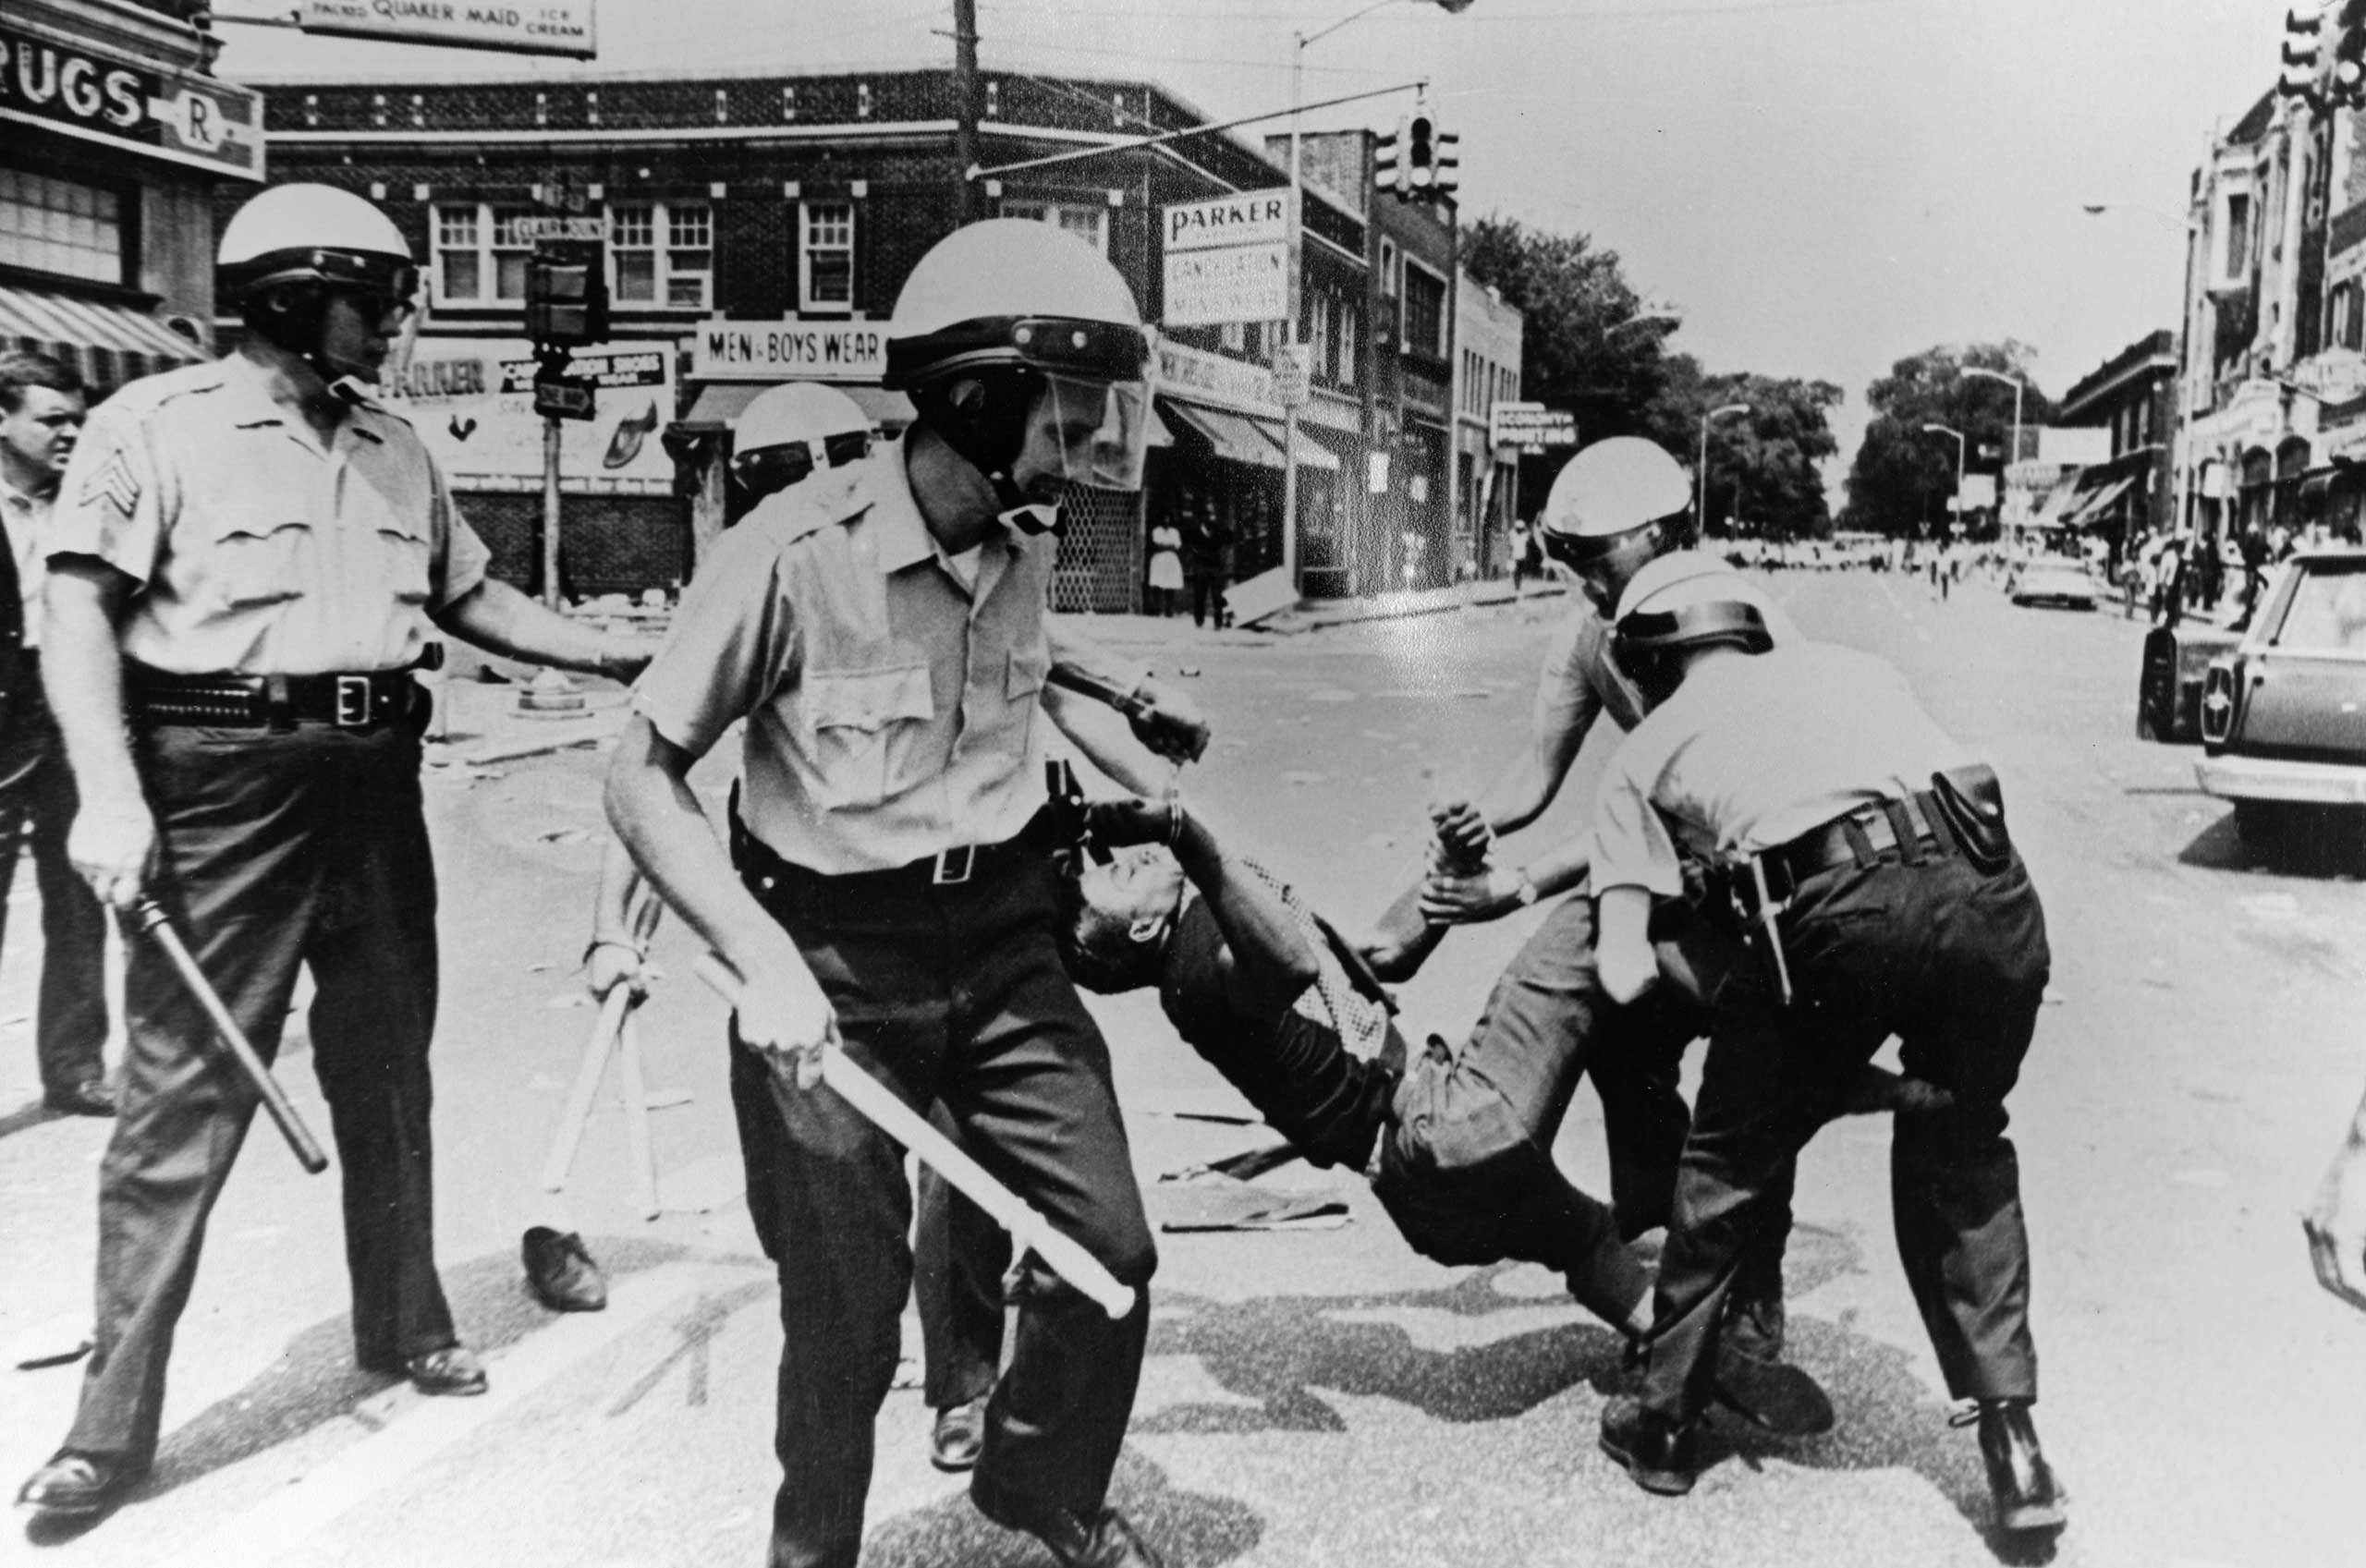 A man is carried away by police during riots in Baltimore, 1968.